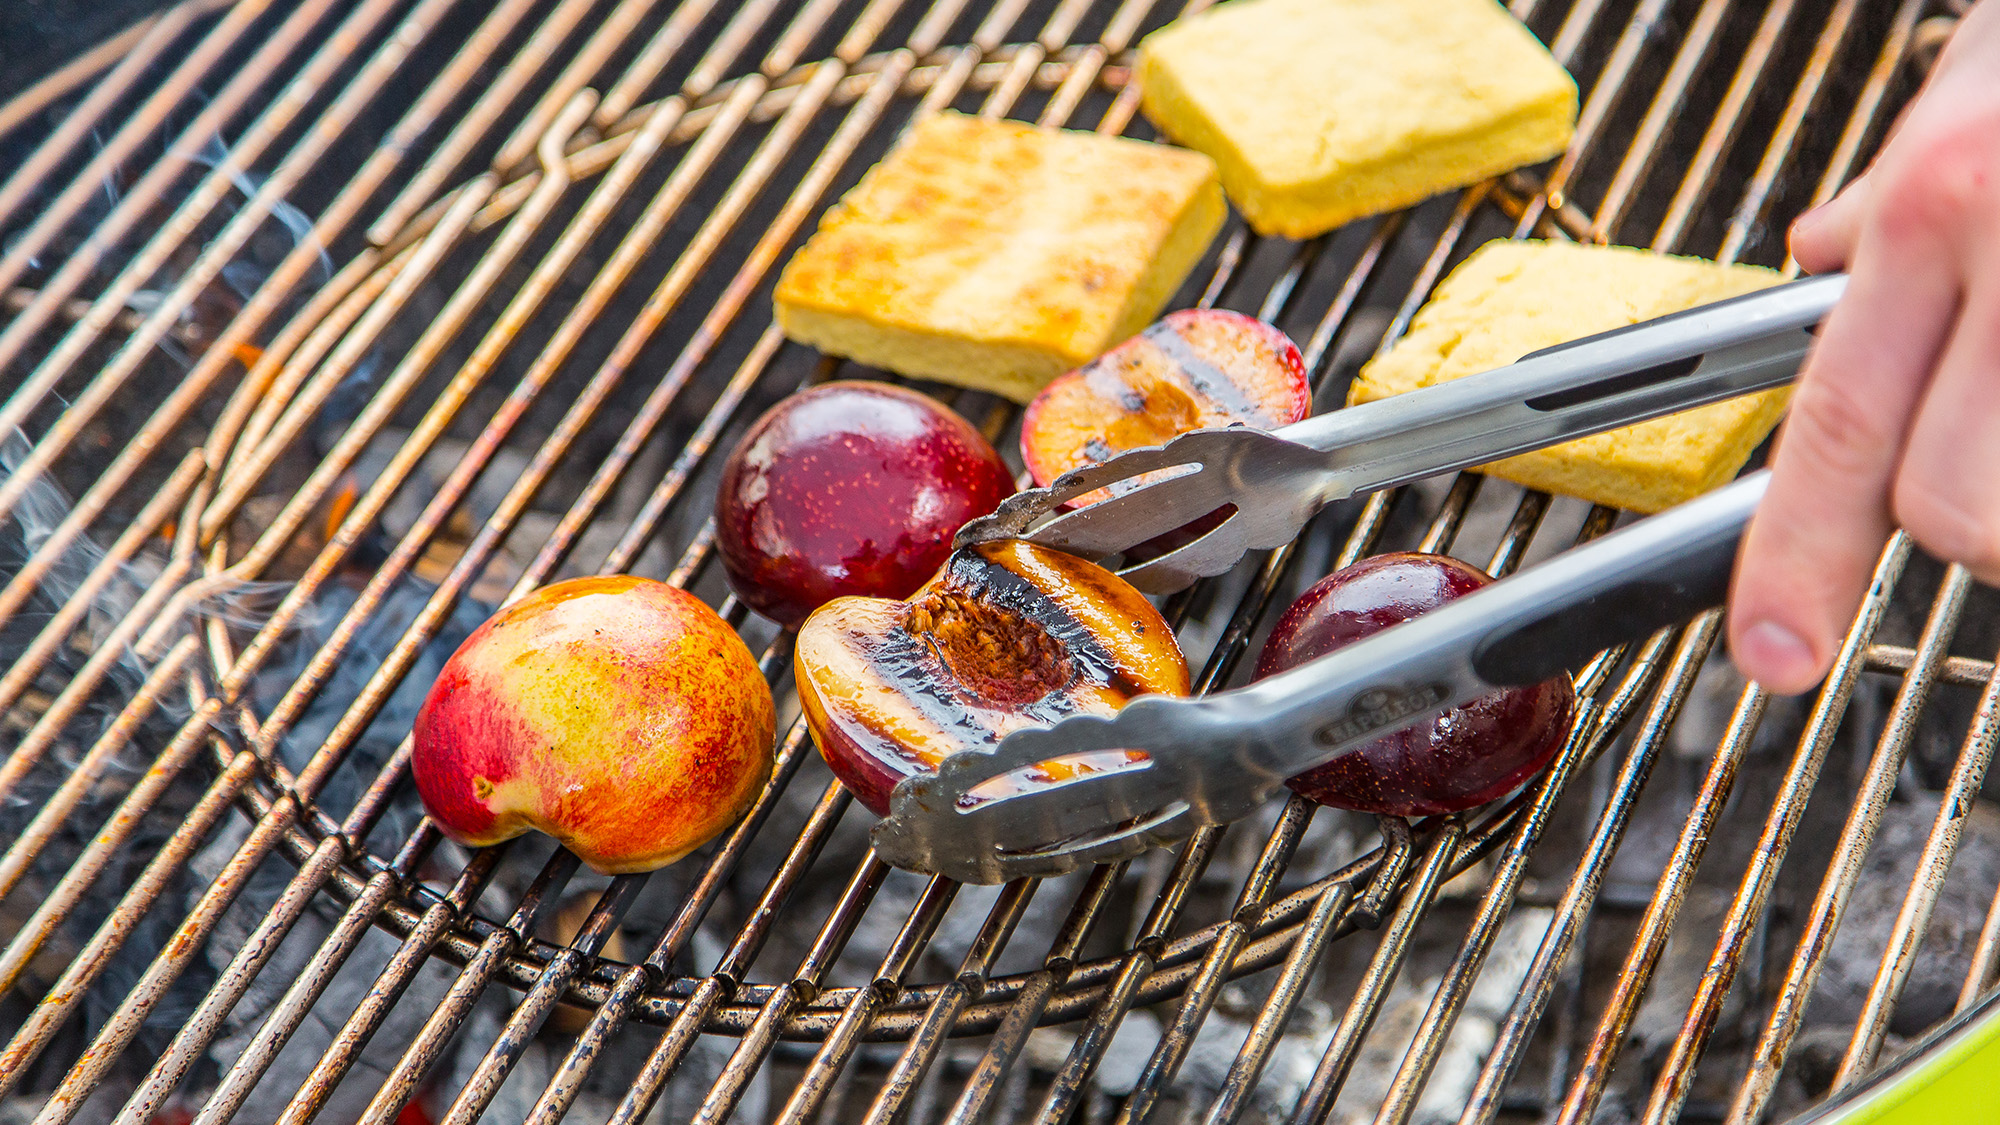 stone fruit shortbread being barbecued